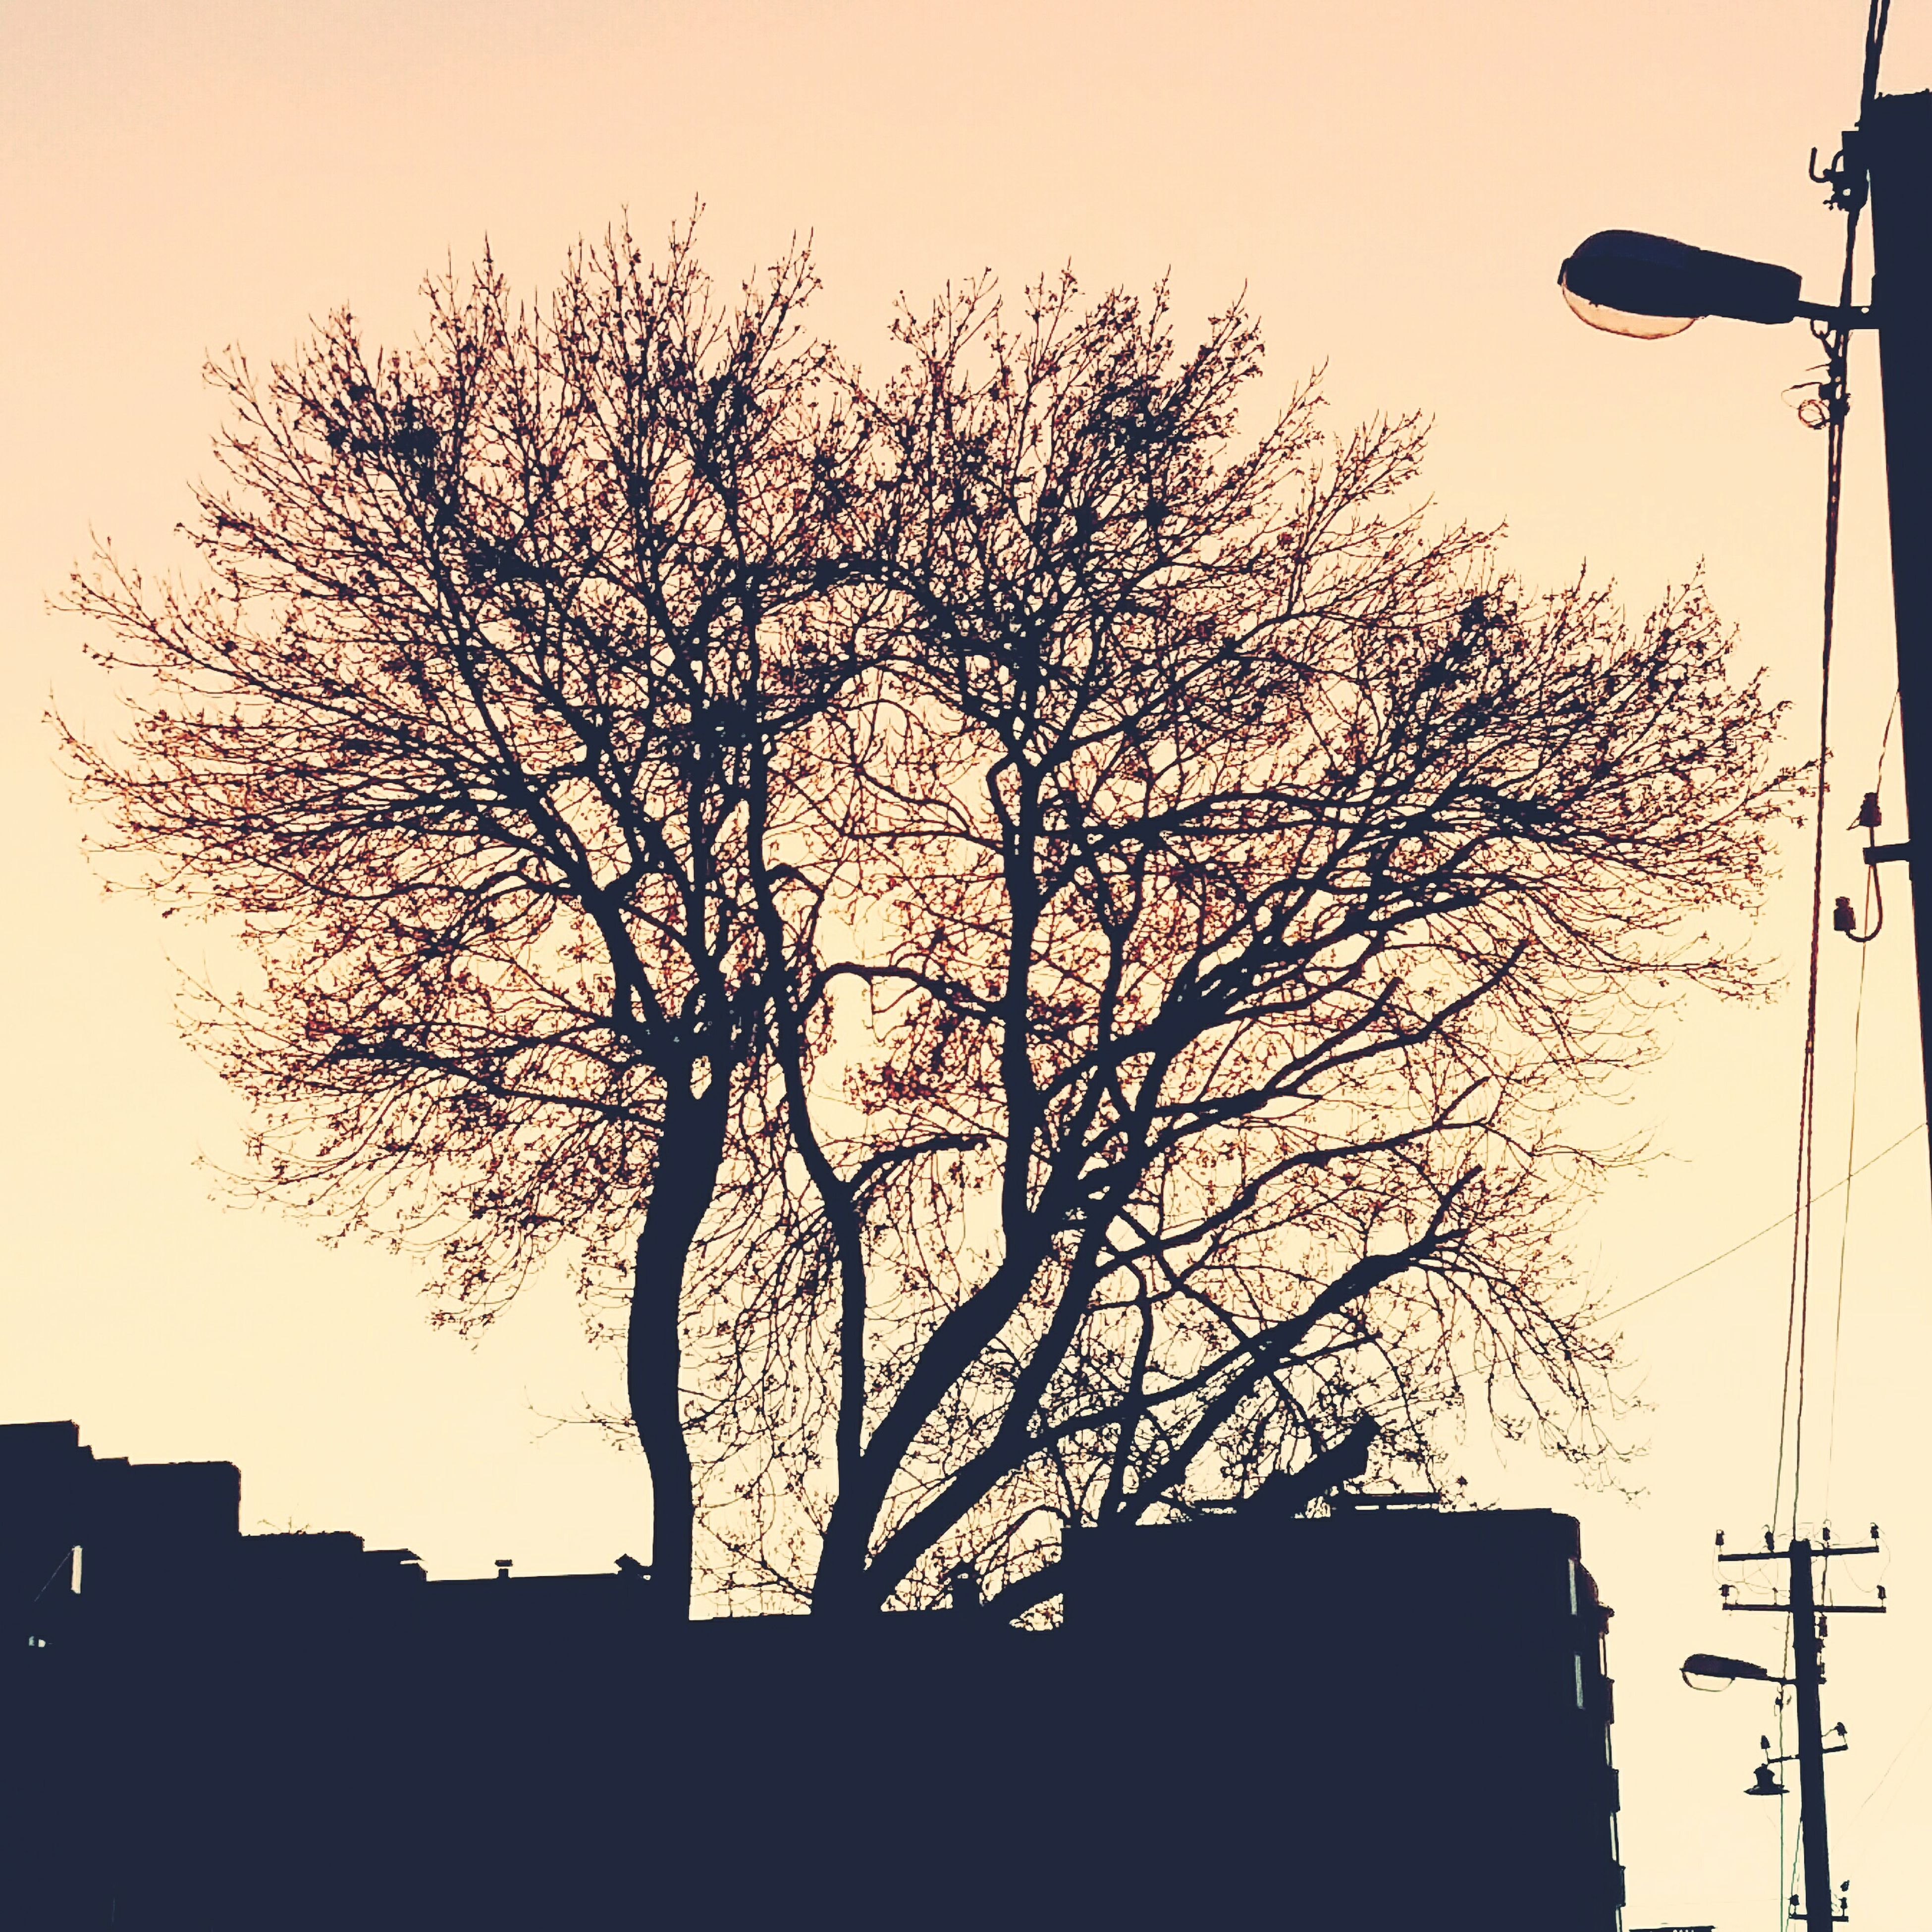 silhouette, tree, street light, low angle view, branch, bare tree, tranquility, scenics, growth, sky, outdoors, tranquil scene, nature, beauty in nature, solitude, day, no people, tall - high